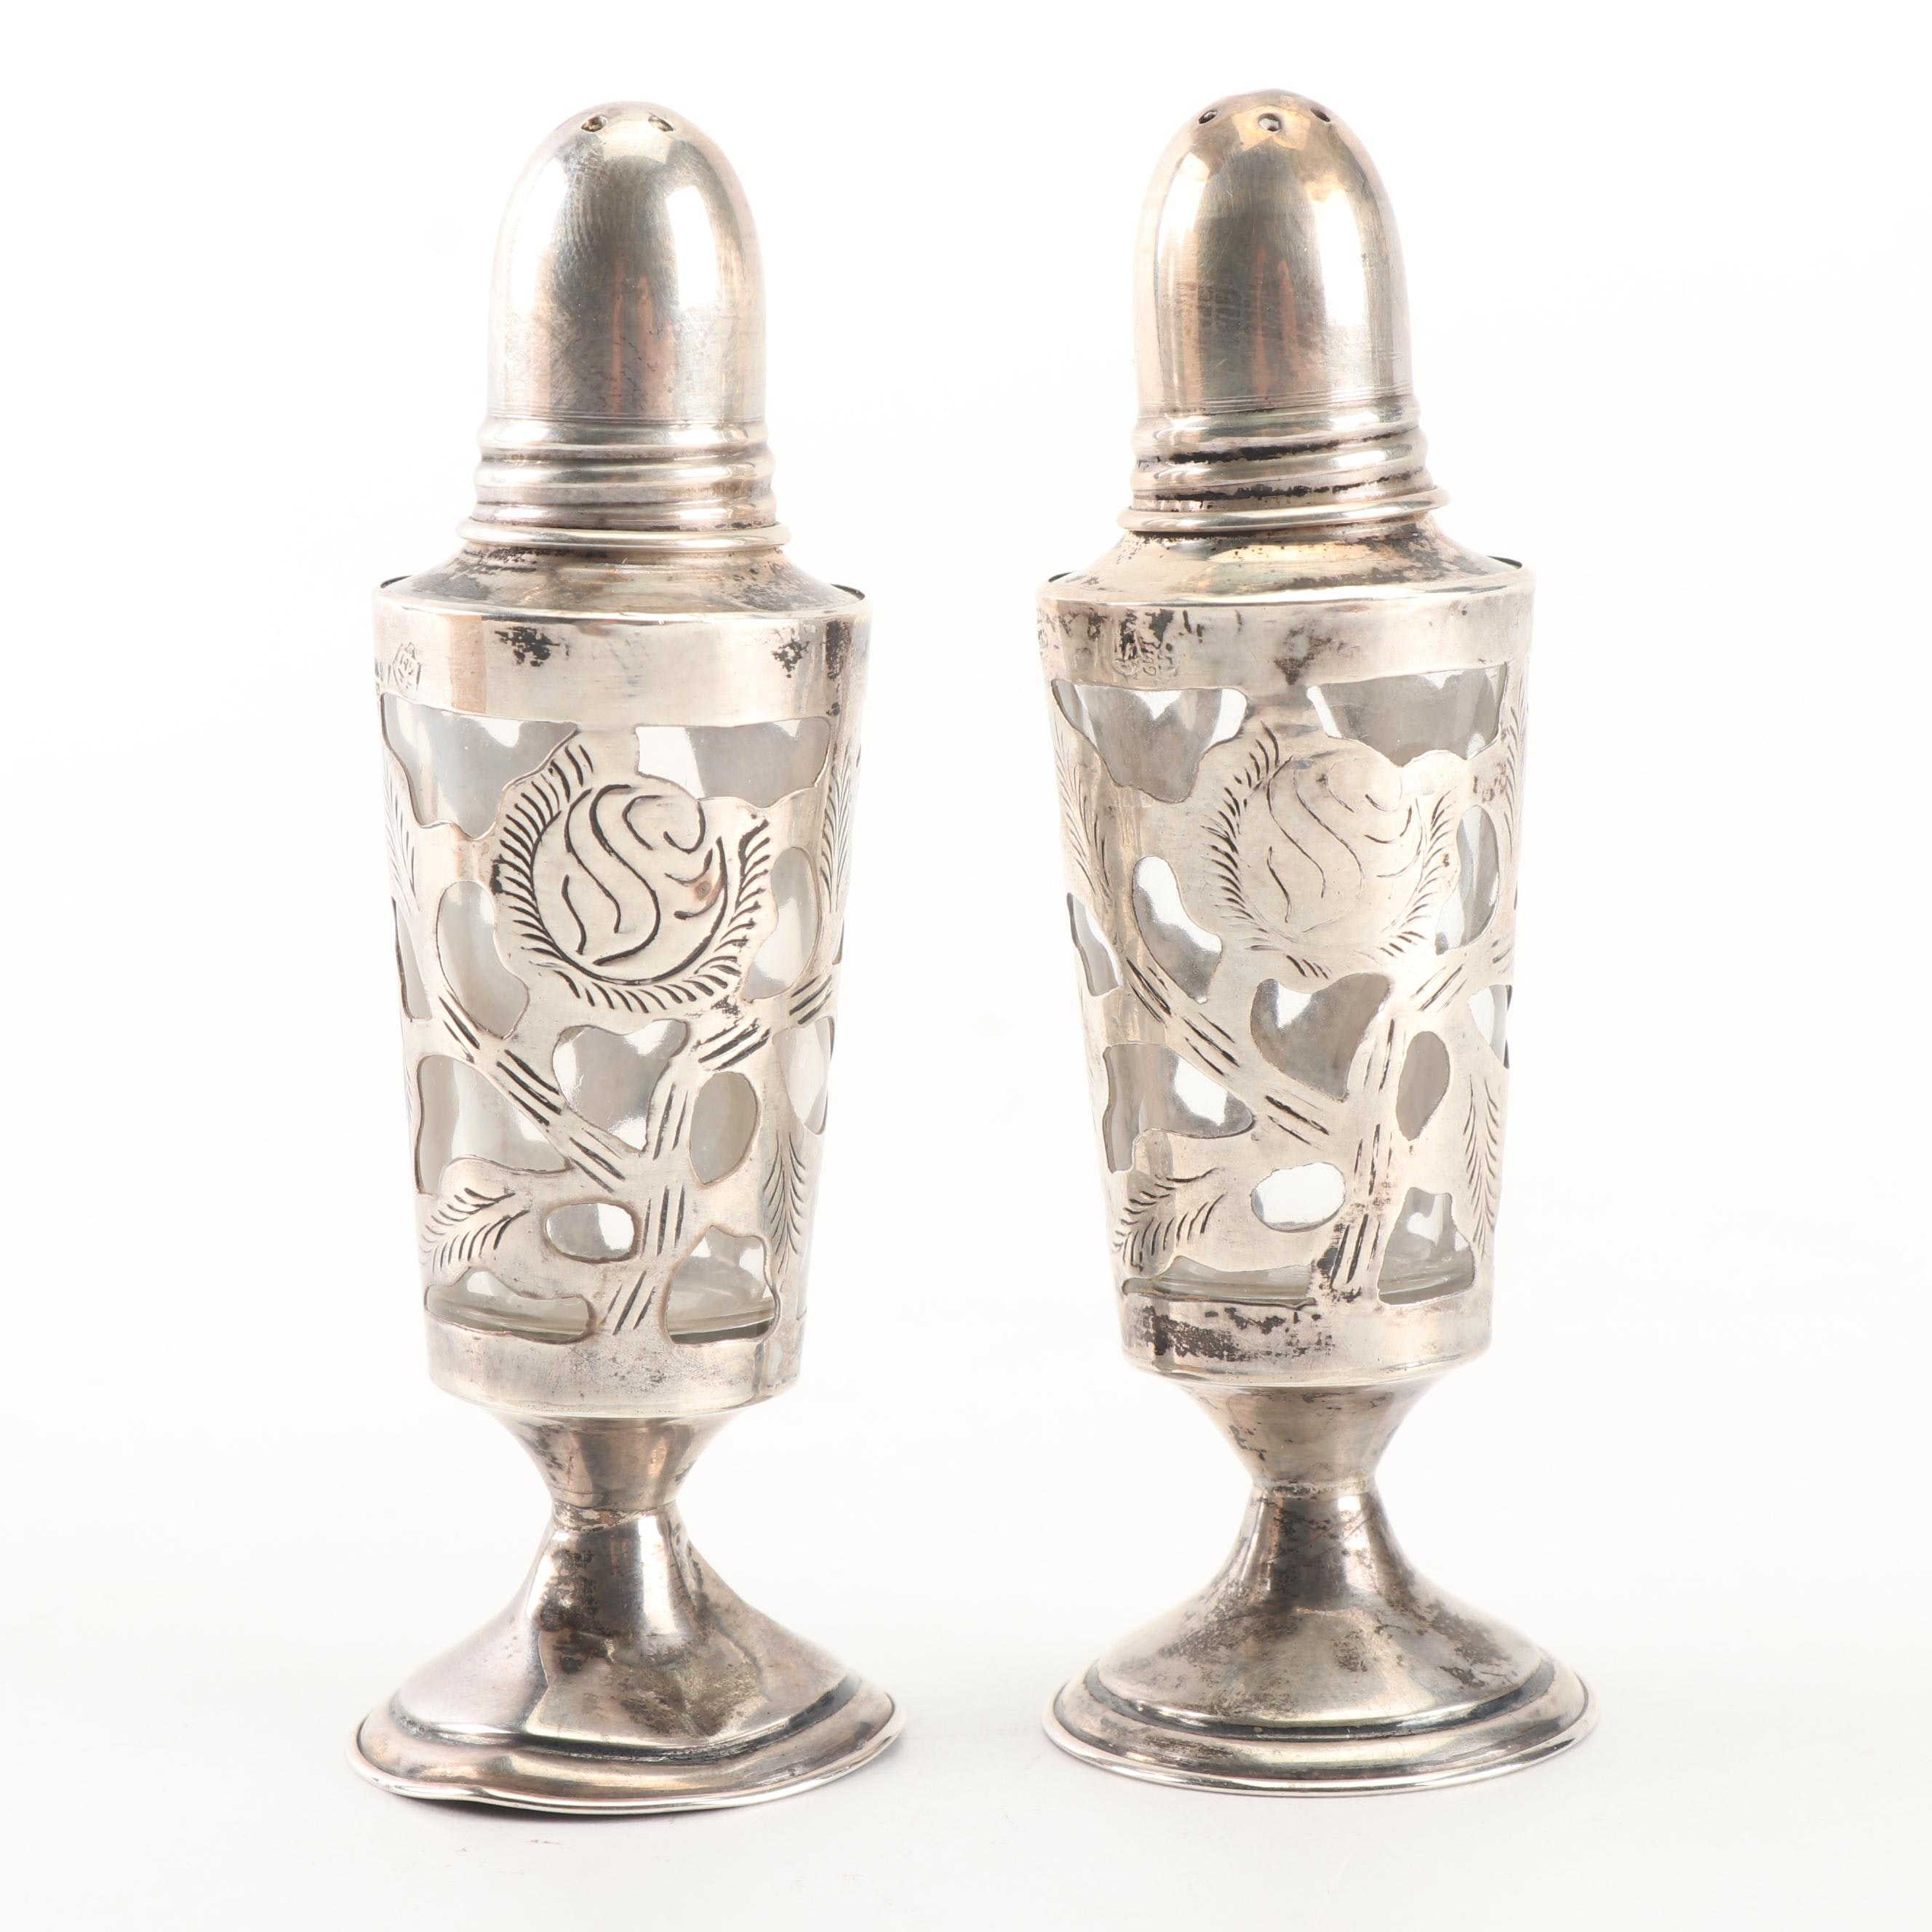 Mexican Sterling Silver Salt and Pepper Shaker Set